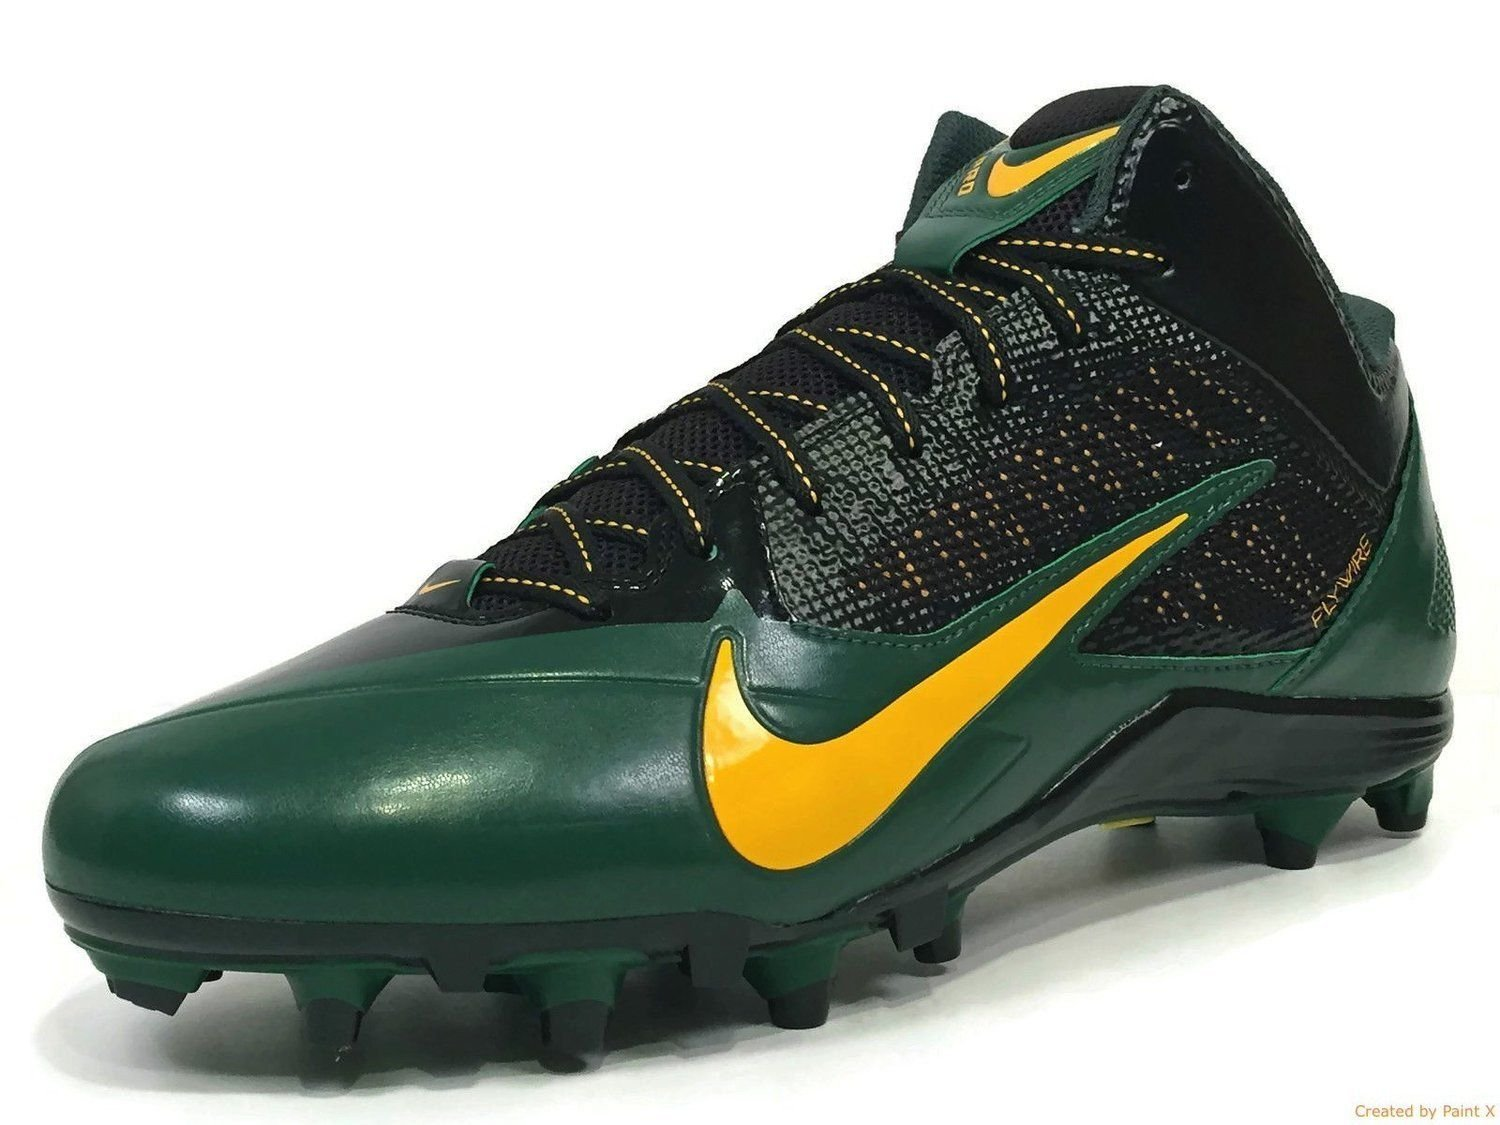 cheap for discount fd5be 26de4 Get Quotations · NFL GREEN BAY PACKERS NIKE MEN S ALPHA PRO TD SB LOW FOOTBALL  CLEATS GREEN YELLOW SIZE